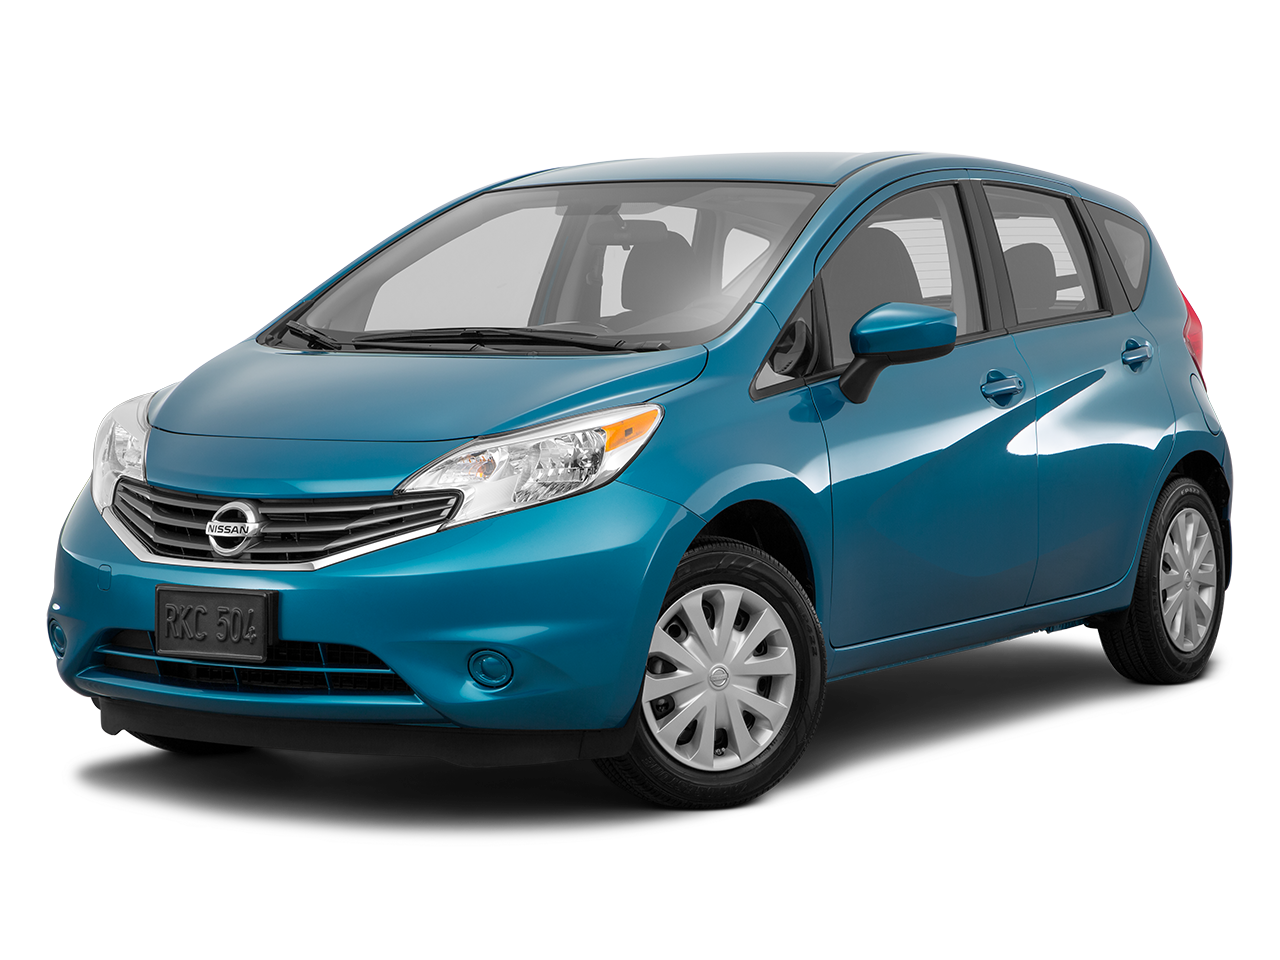 new nissan versa note lease offers and best prices quirk nissan. Black Bedroom Furniture Sets. Home Design Ideas